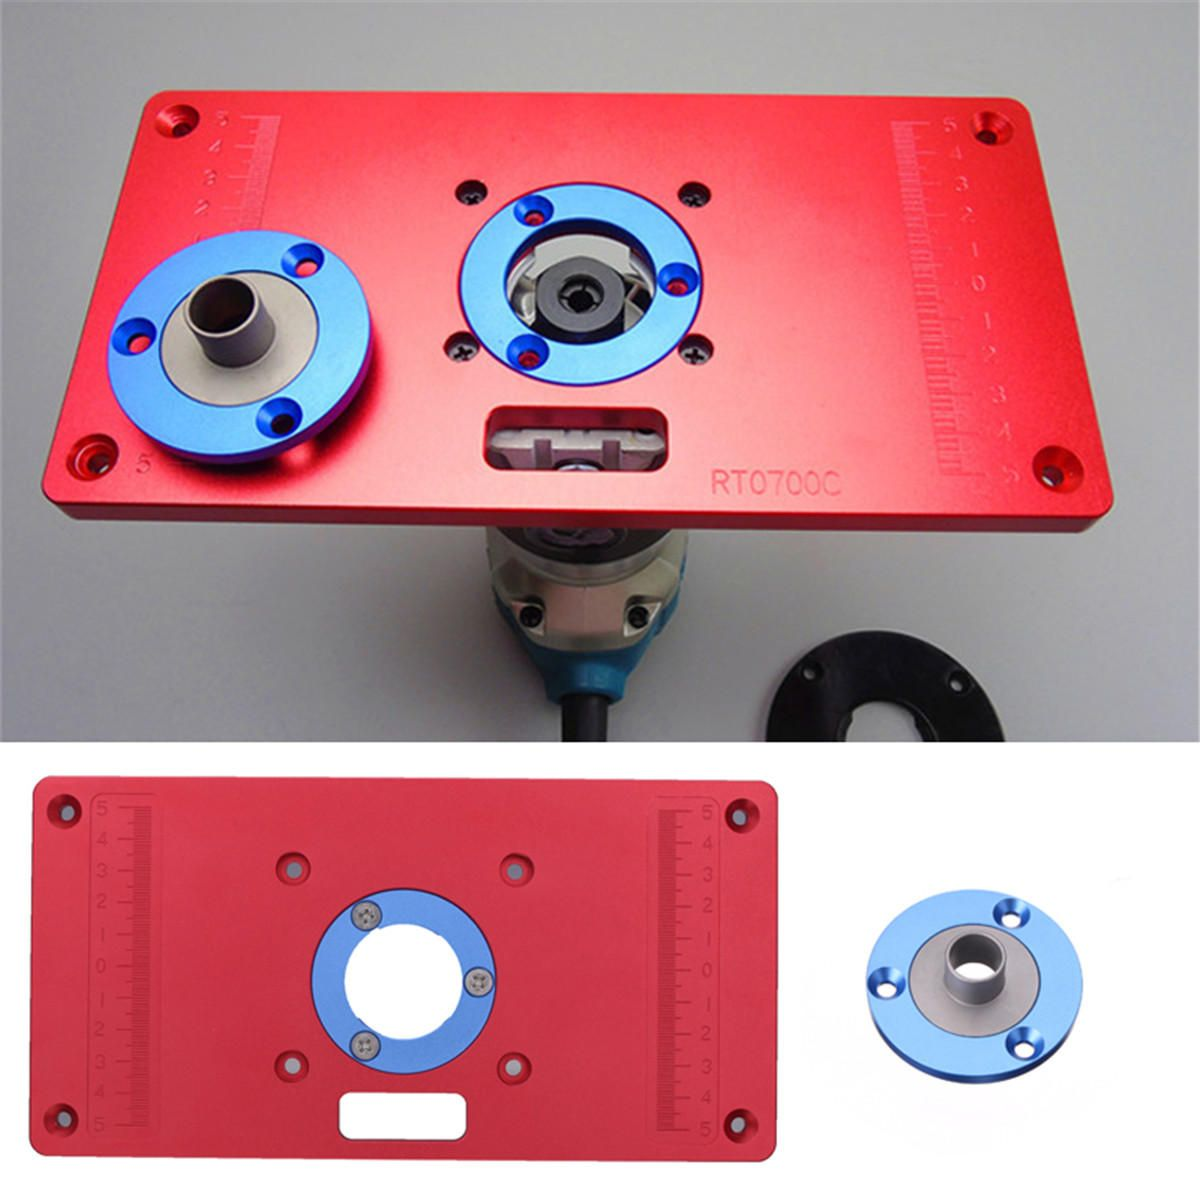 233x117x8mm aluminum router table insert plate for woodworking 233x117x8mm aluminum router table insert plate for woodworking benches rt0700c router trimmer red greentooth Images